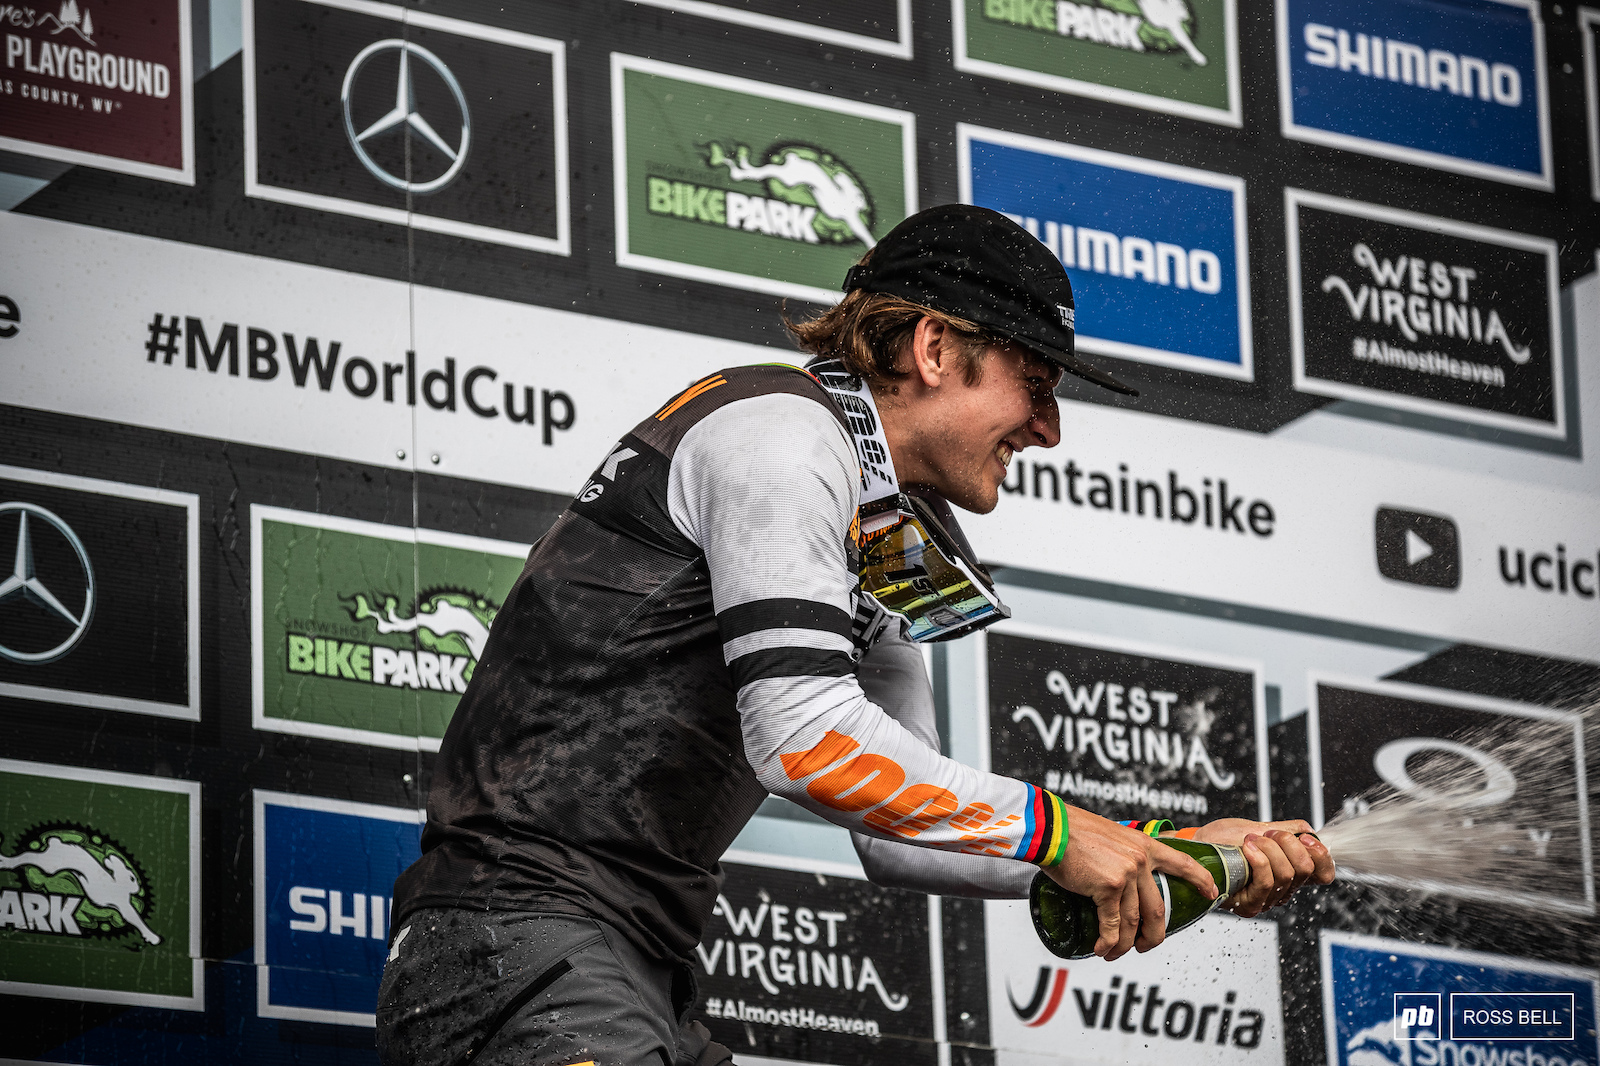 Reece Wilson gets to spray that World Cup winner s champagne for the very first time.